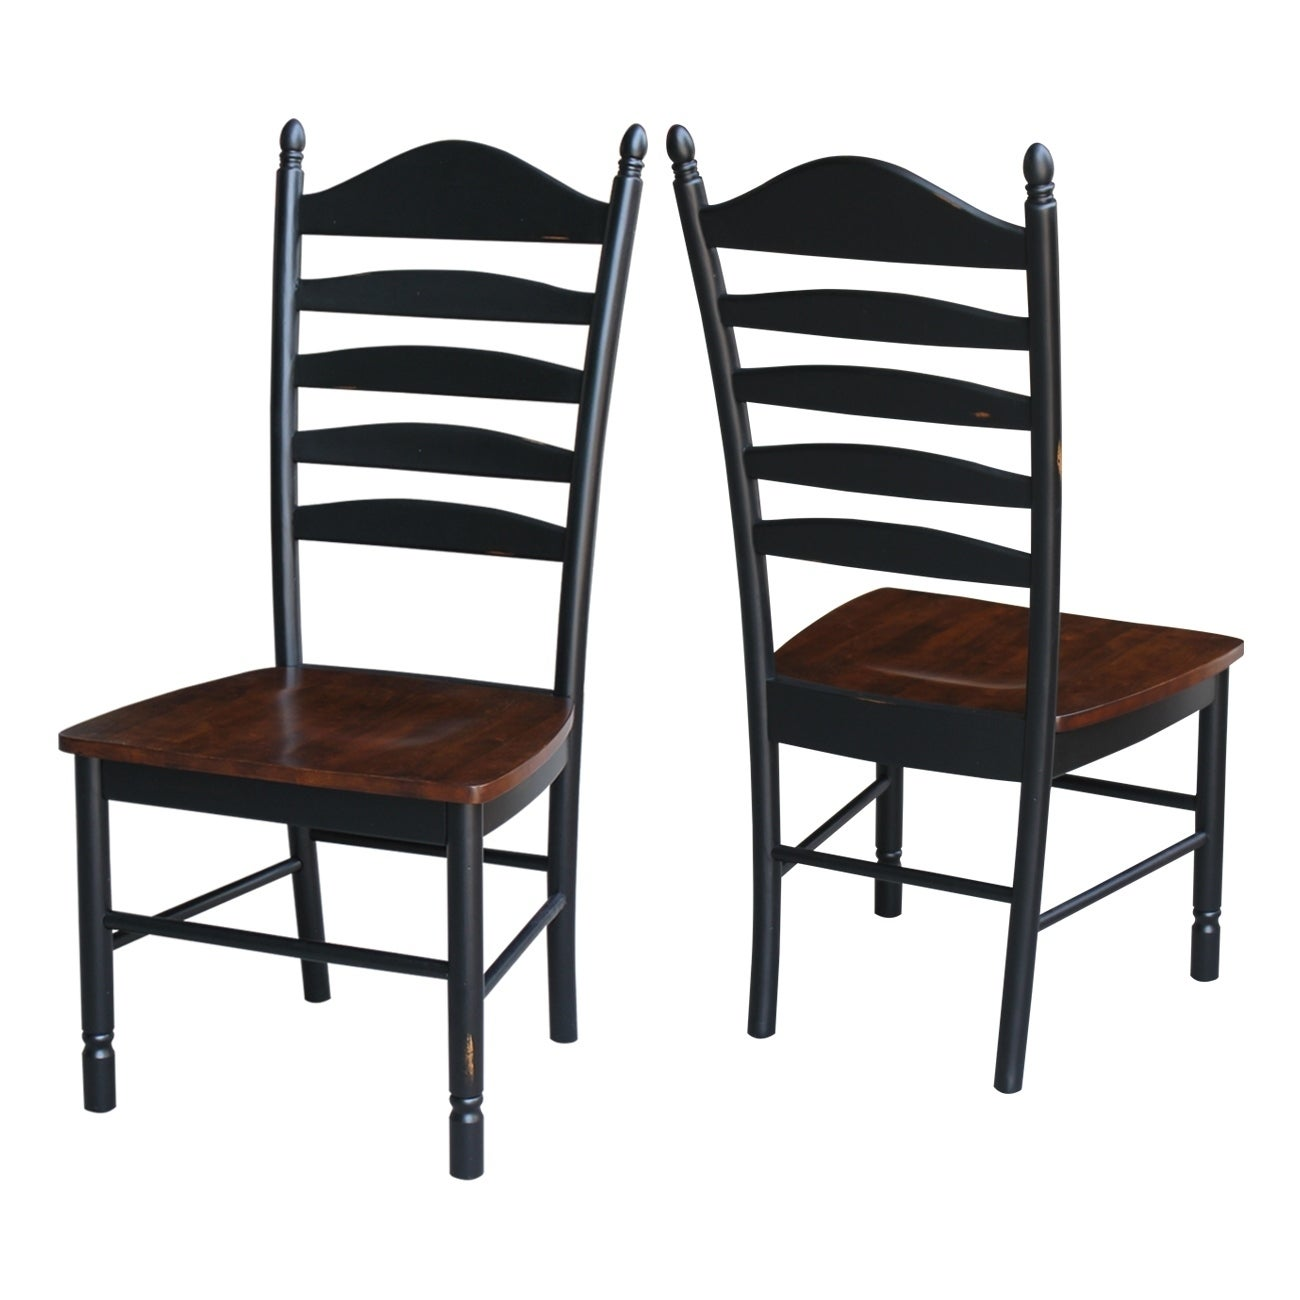 International Concepts Hand Rubbed Finish Wooden Tall Ladderback Chairs  (Set Of 2)   Free Shipping Today   Overstock.com   19718509